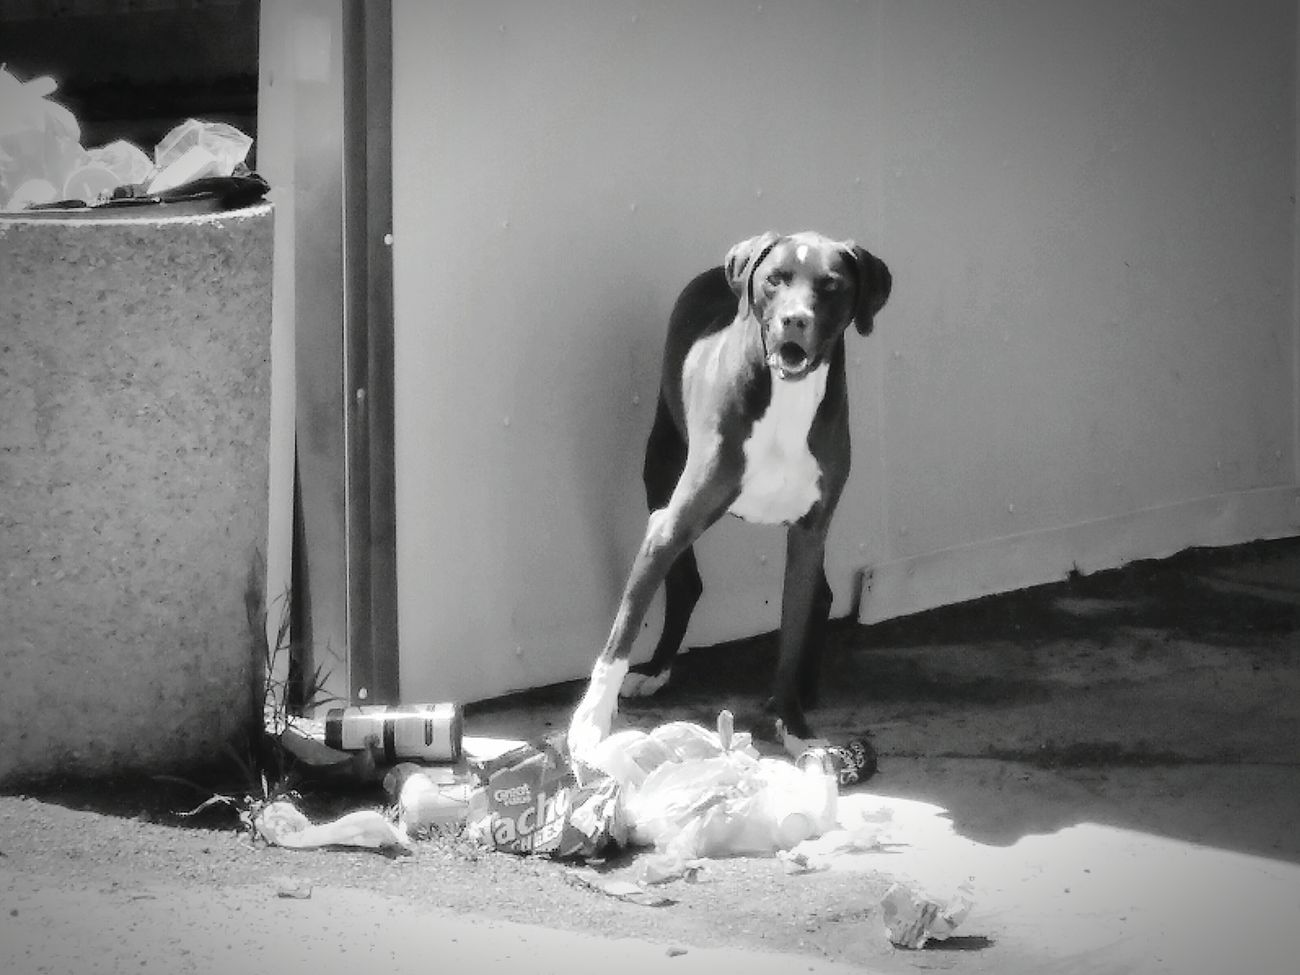 Dog Pets Outdoors No People Black&white♥ Looking At Camera Standing EyeEmNewHere Stray Animal Capturing Emotion